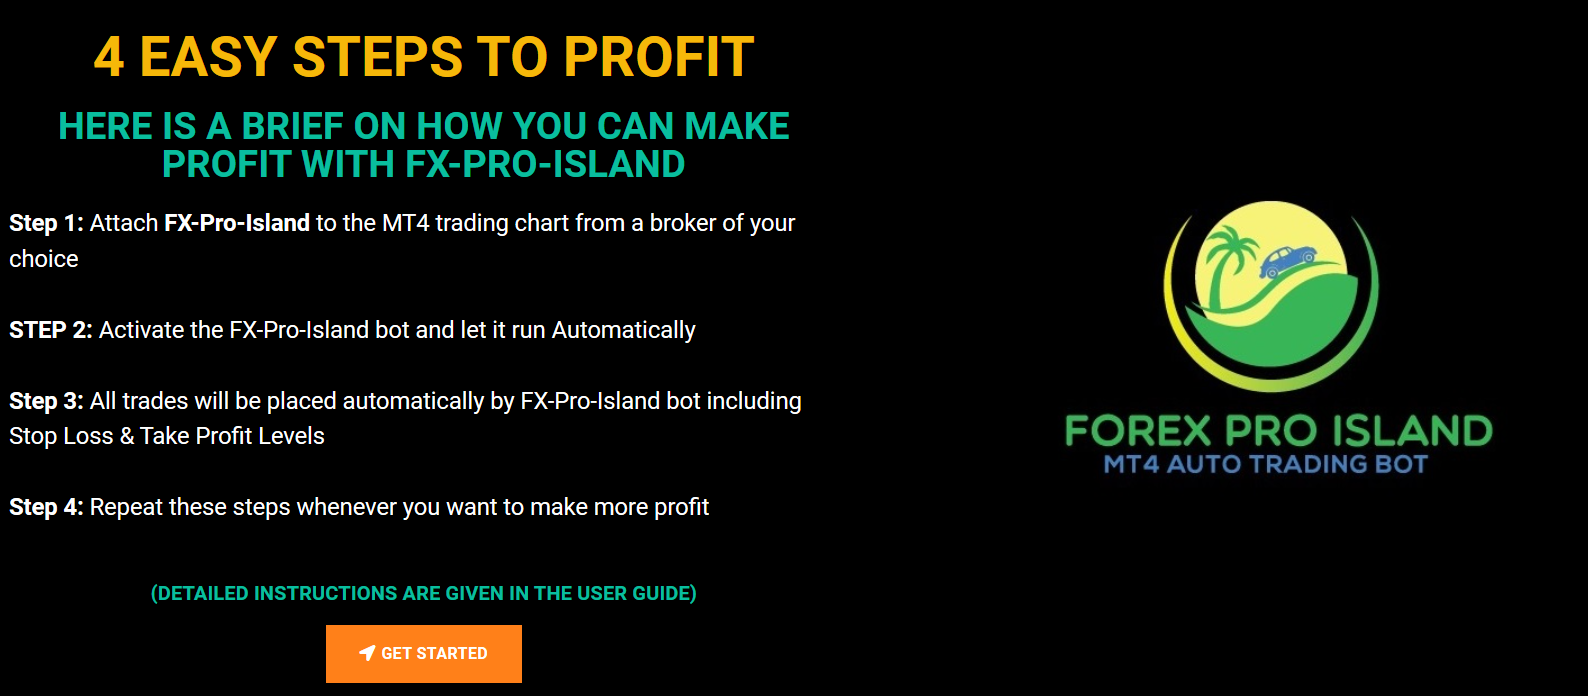 Island forex trading horse betting calculator wheels